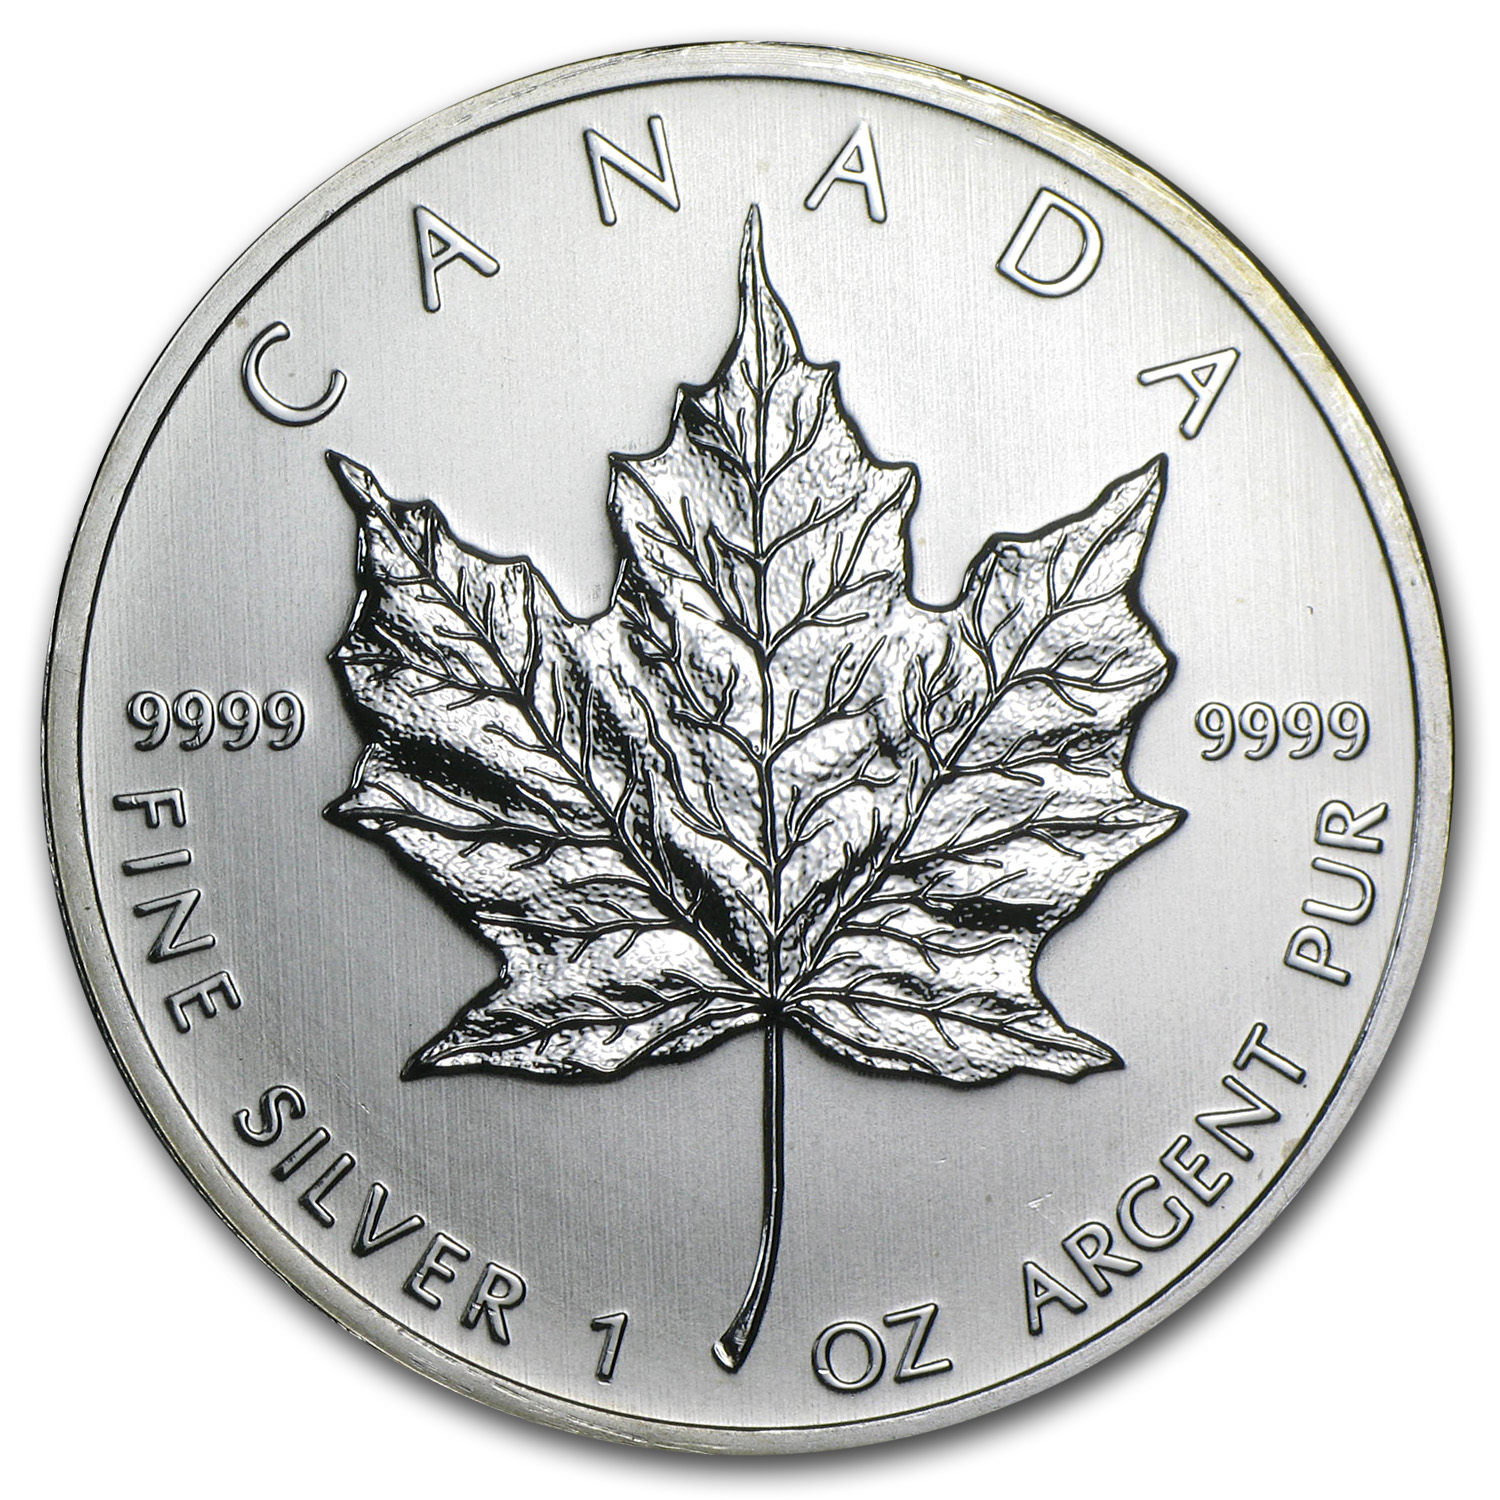 2010 1 oz Silver Canadian Maple Leaf BU